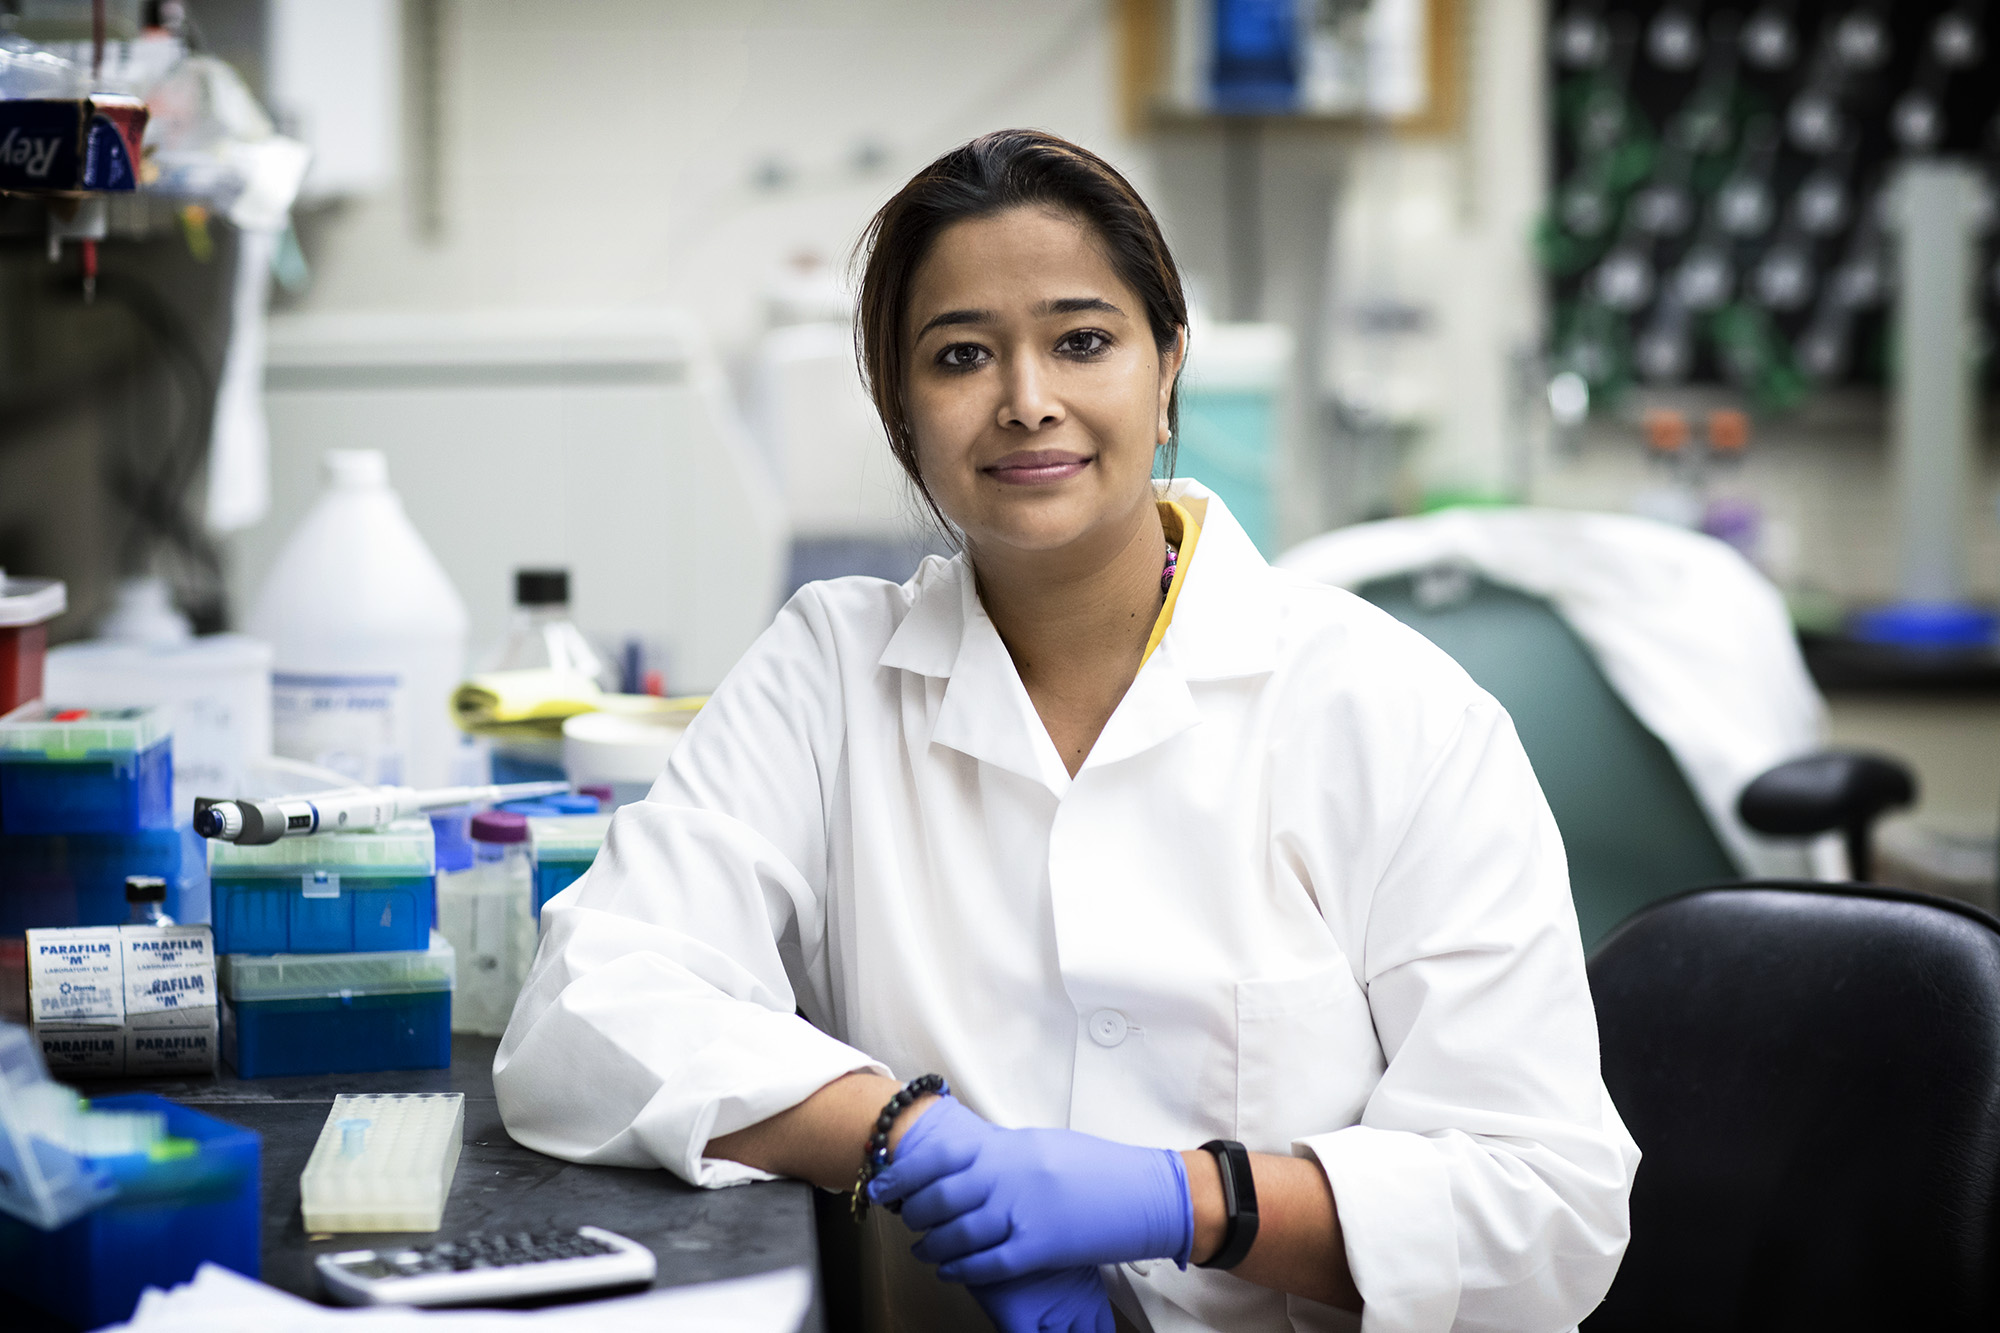 UVA Scientist Developing Gene Therapy to Help Girls With Rett Syndrome